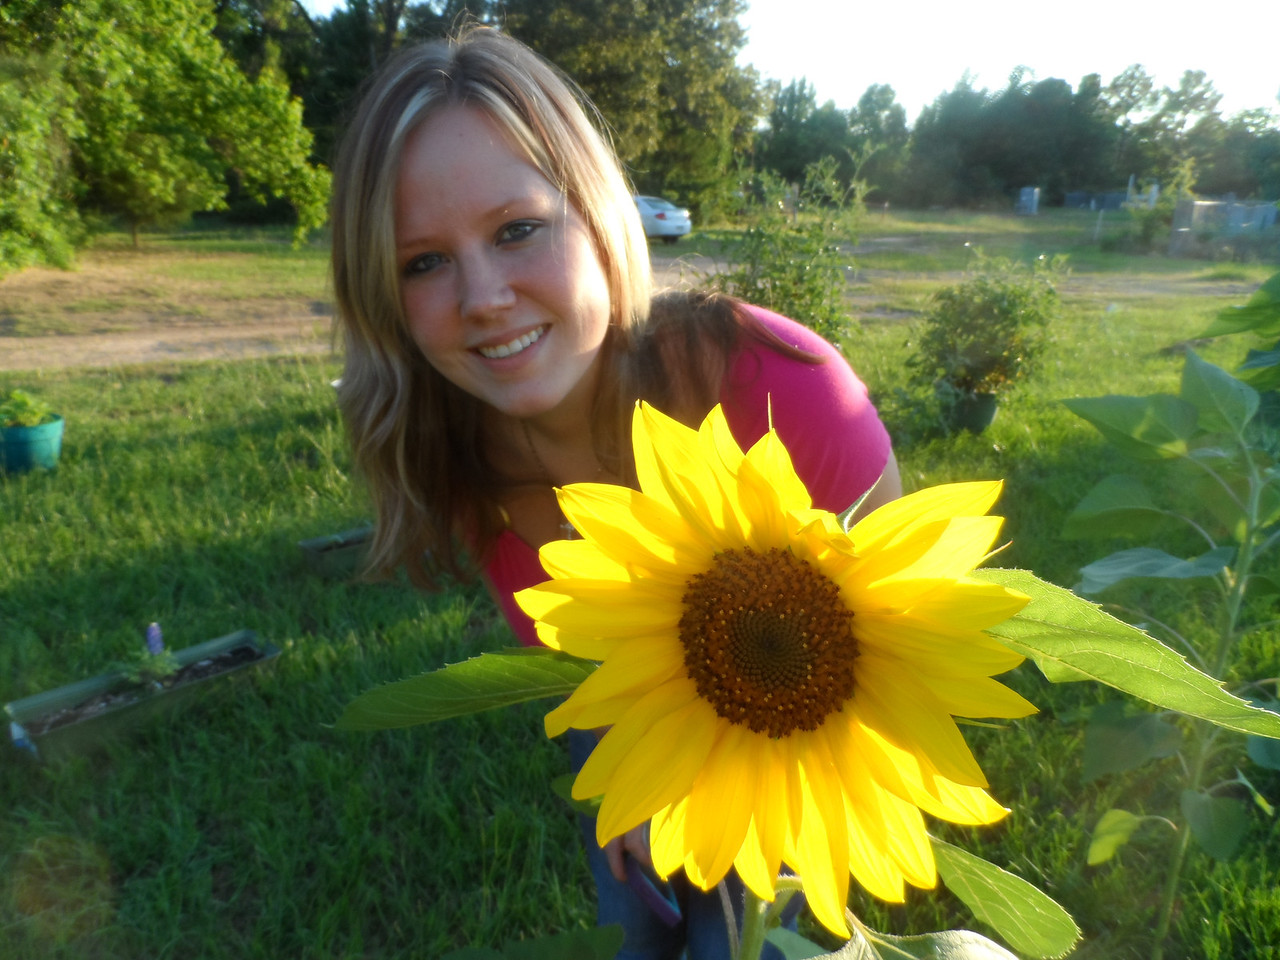 Katie and one of Dad's sunflowers.  Katie is definitely prettier than the sunflower.